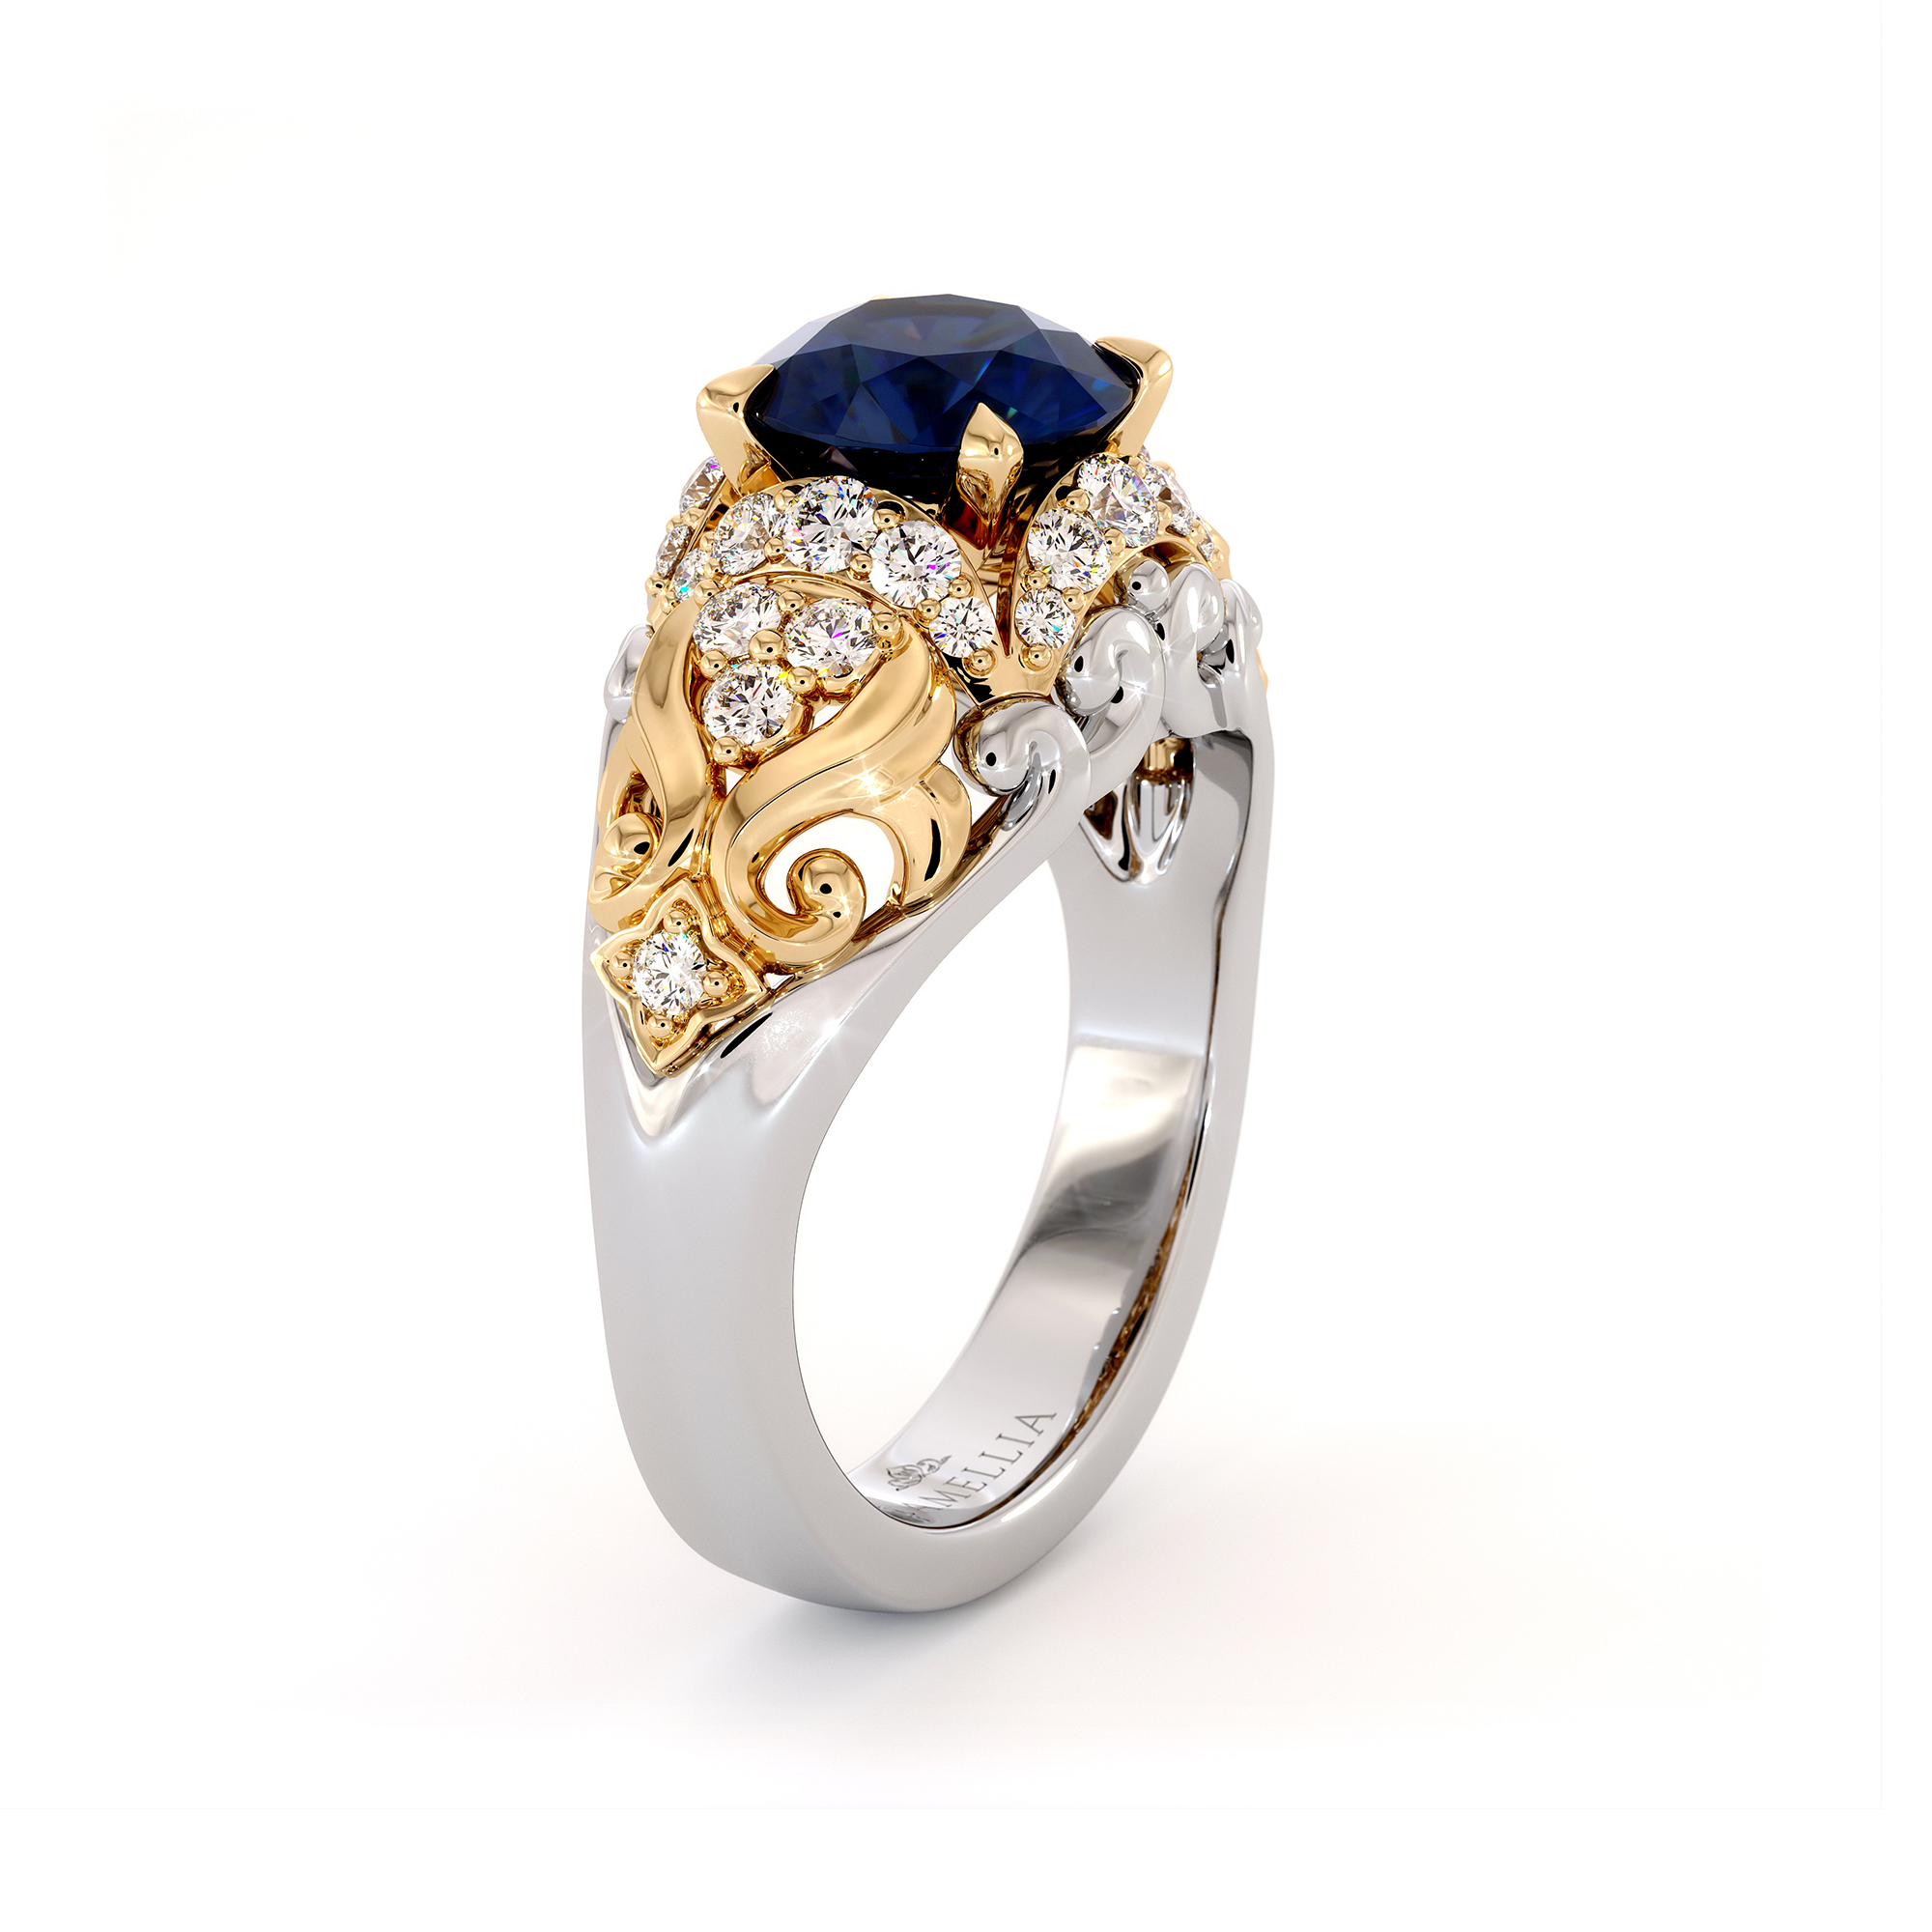 Diamonds Halo Blue Sapphire Engagement Ring Sea Waves Ring Round 2 Carat Sapphire Ring Unique 2 Tone Gold Engagement Ring